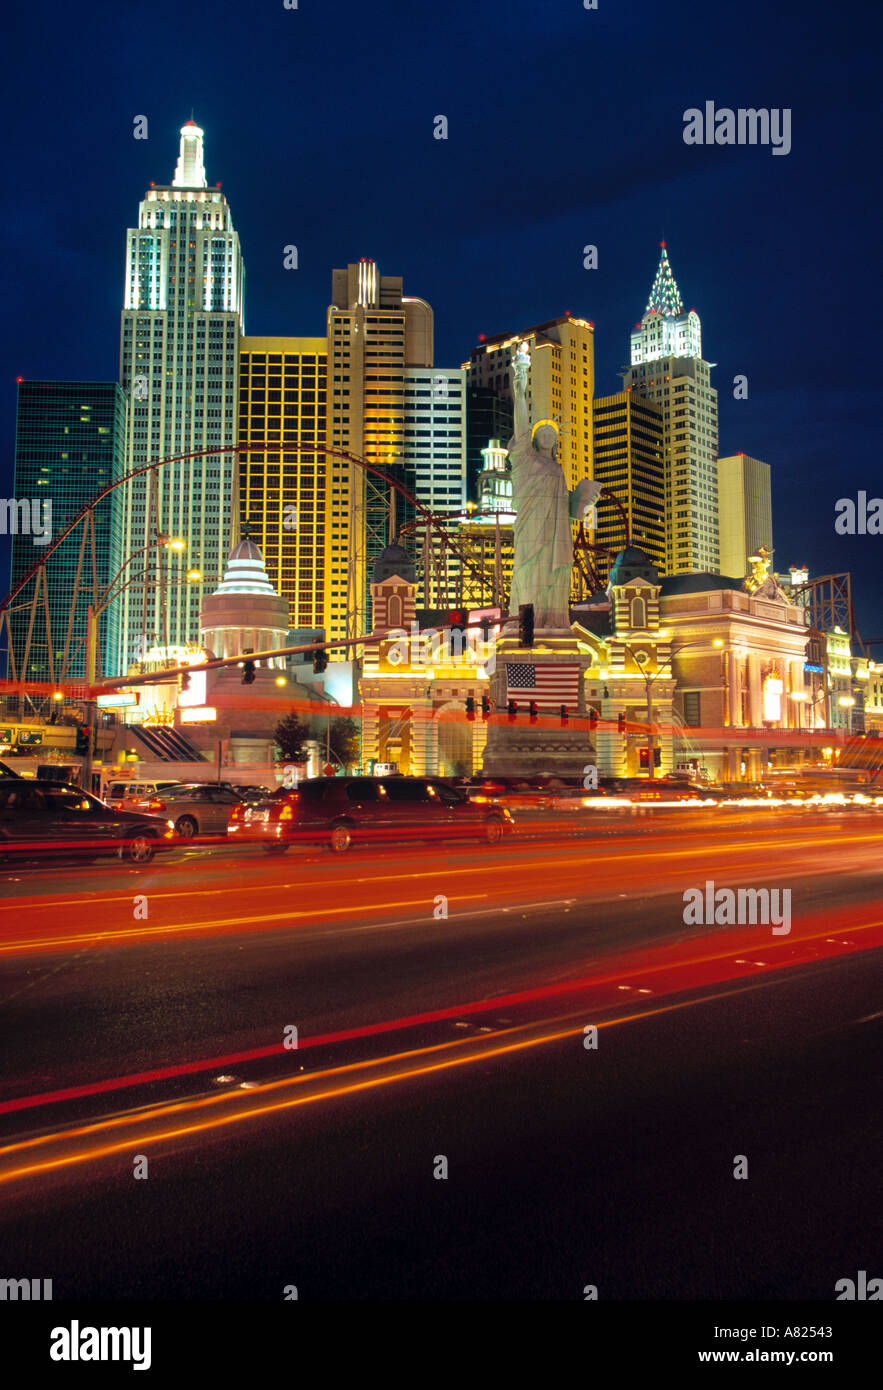 New York, Las Vegas, Nevada, USA Photo Stock